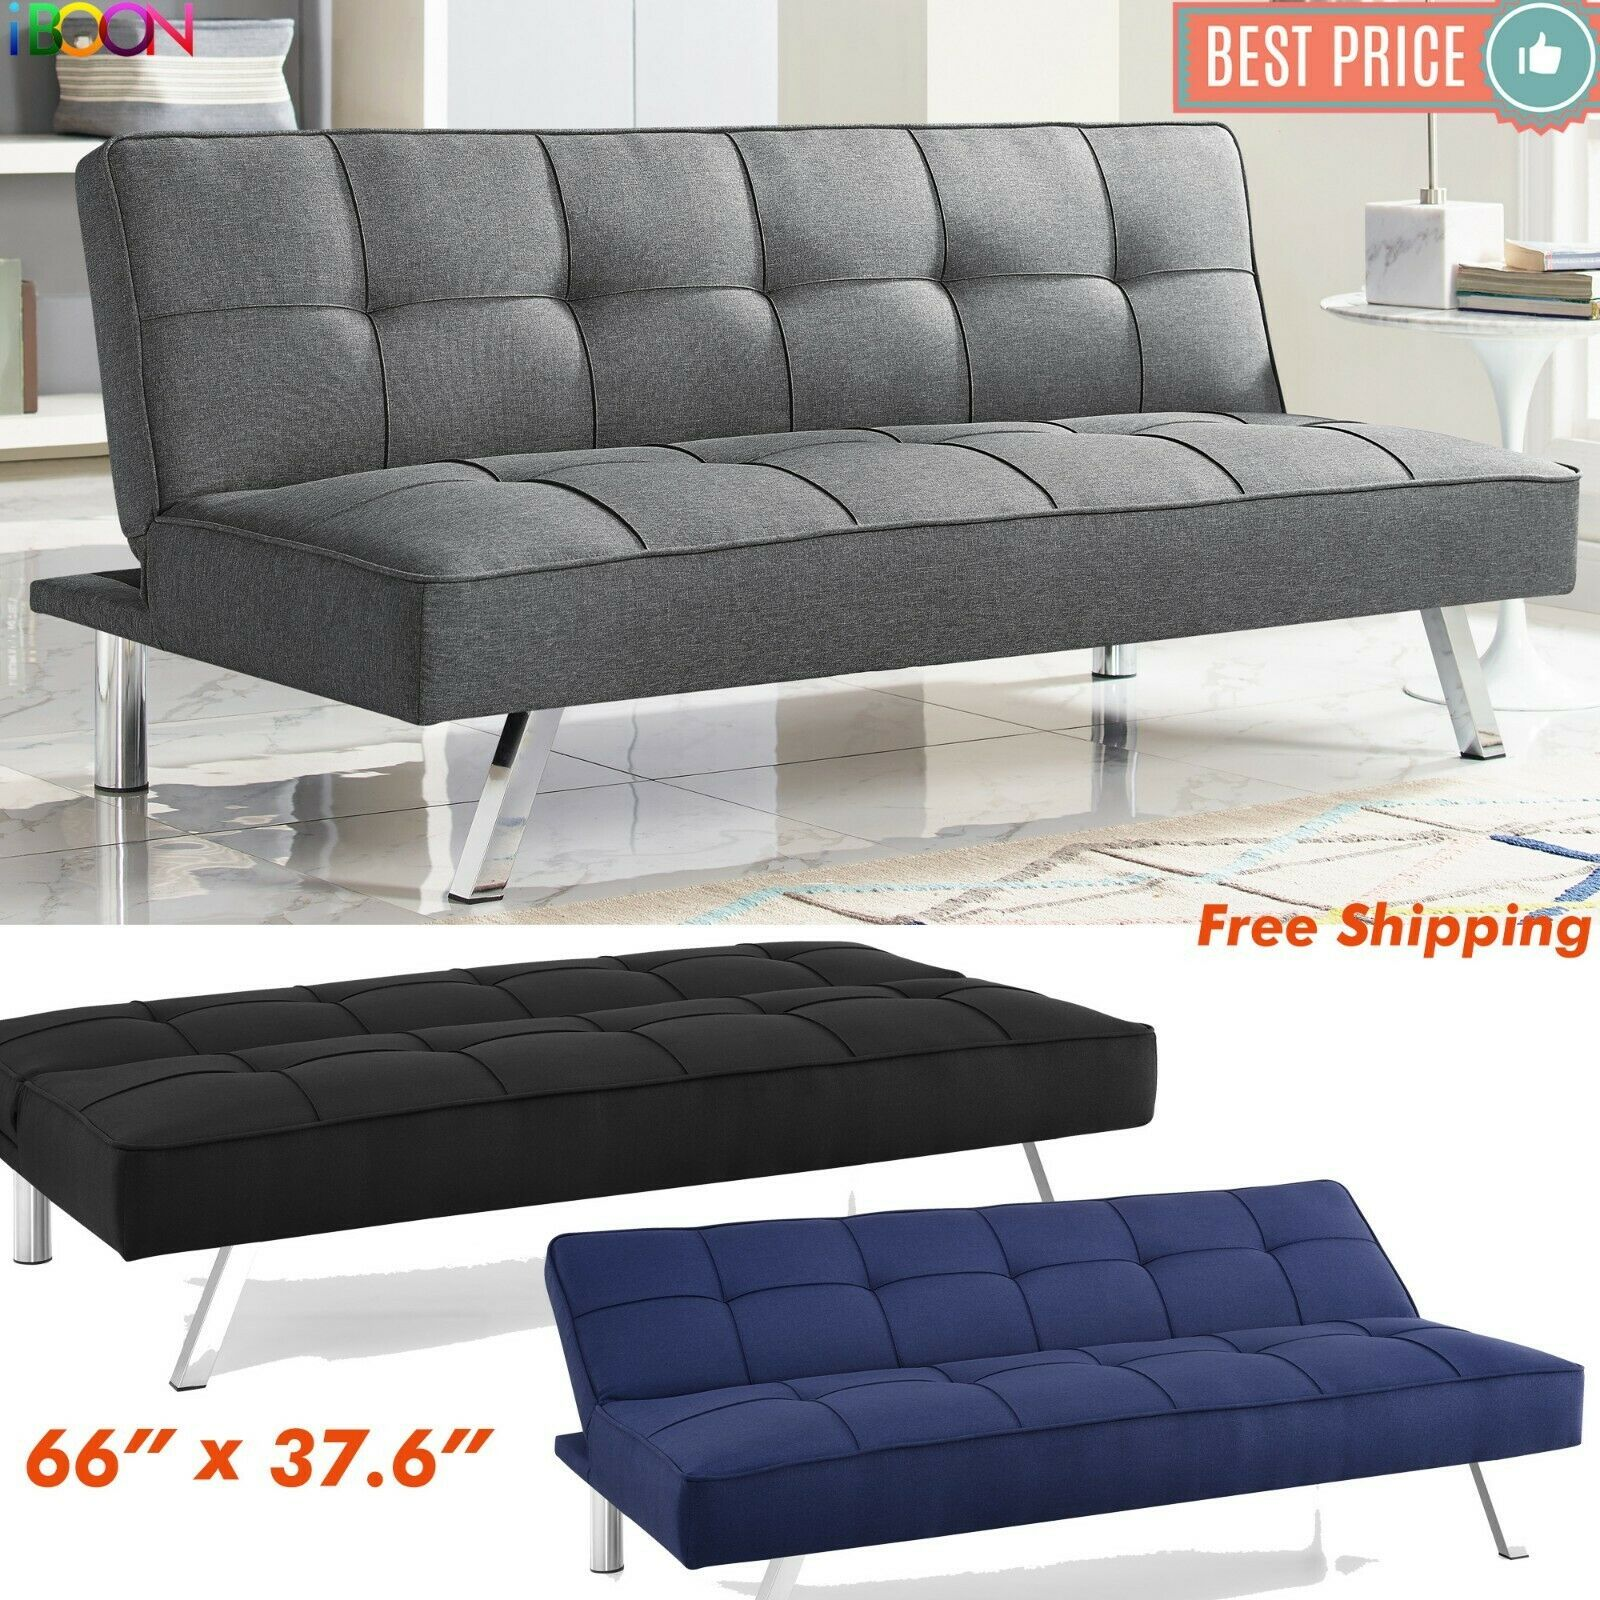 Futon Sofa Bed Sleeper Convertible Couch 3 Seat Foldable Full Size With Mattress 145 98 Lounge Seating In 2020 Futon Sofa Bed Sofa Bed Mattress Bed Mattress Sizes